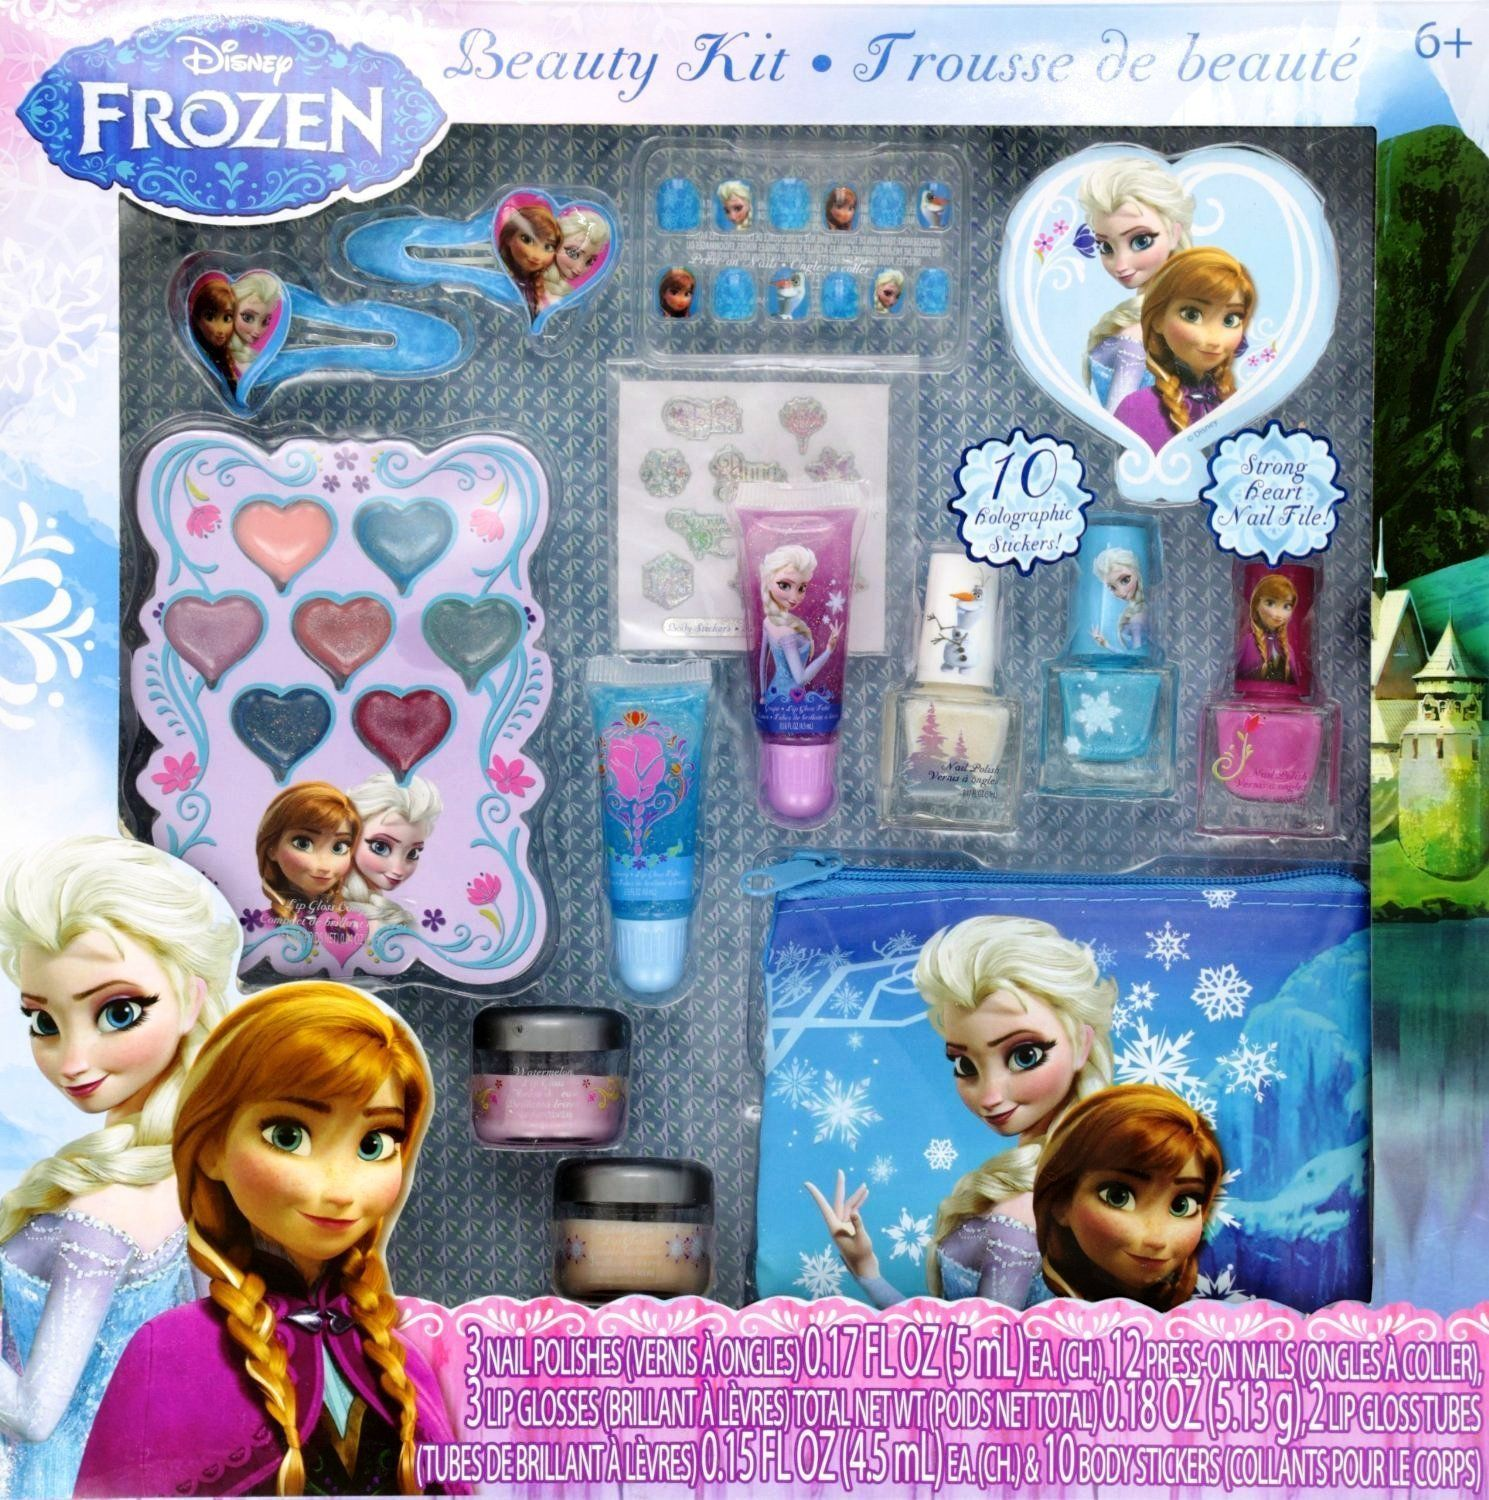 12 Piece Disney S Frozen Beauty Cosmetic Set For Kids Frozen Beauty Play Kit For Kids Toys Games On Amazon Com Disney Frozen Elsa Disney Frozen Beauty Kit